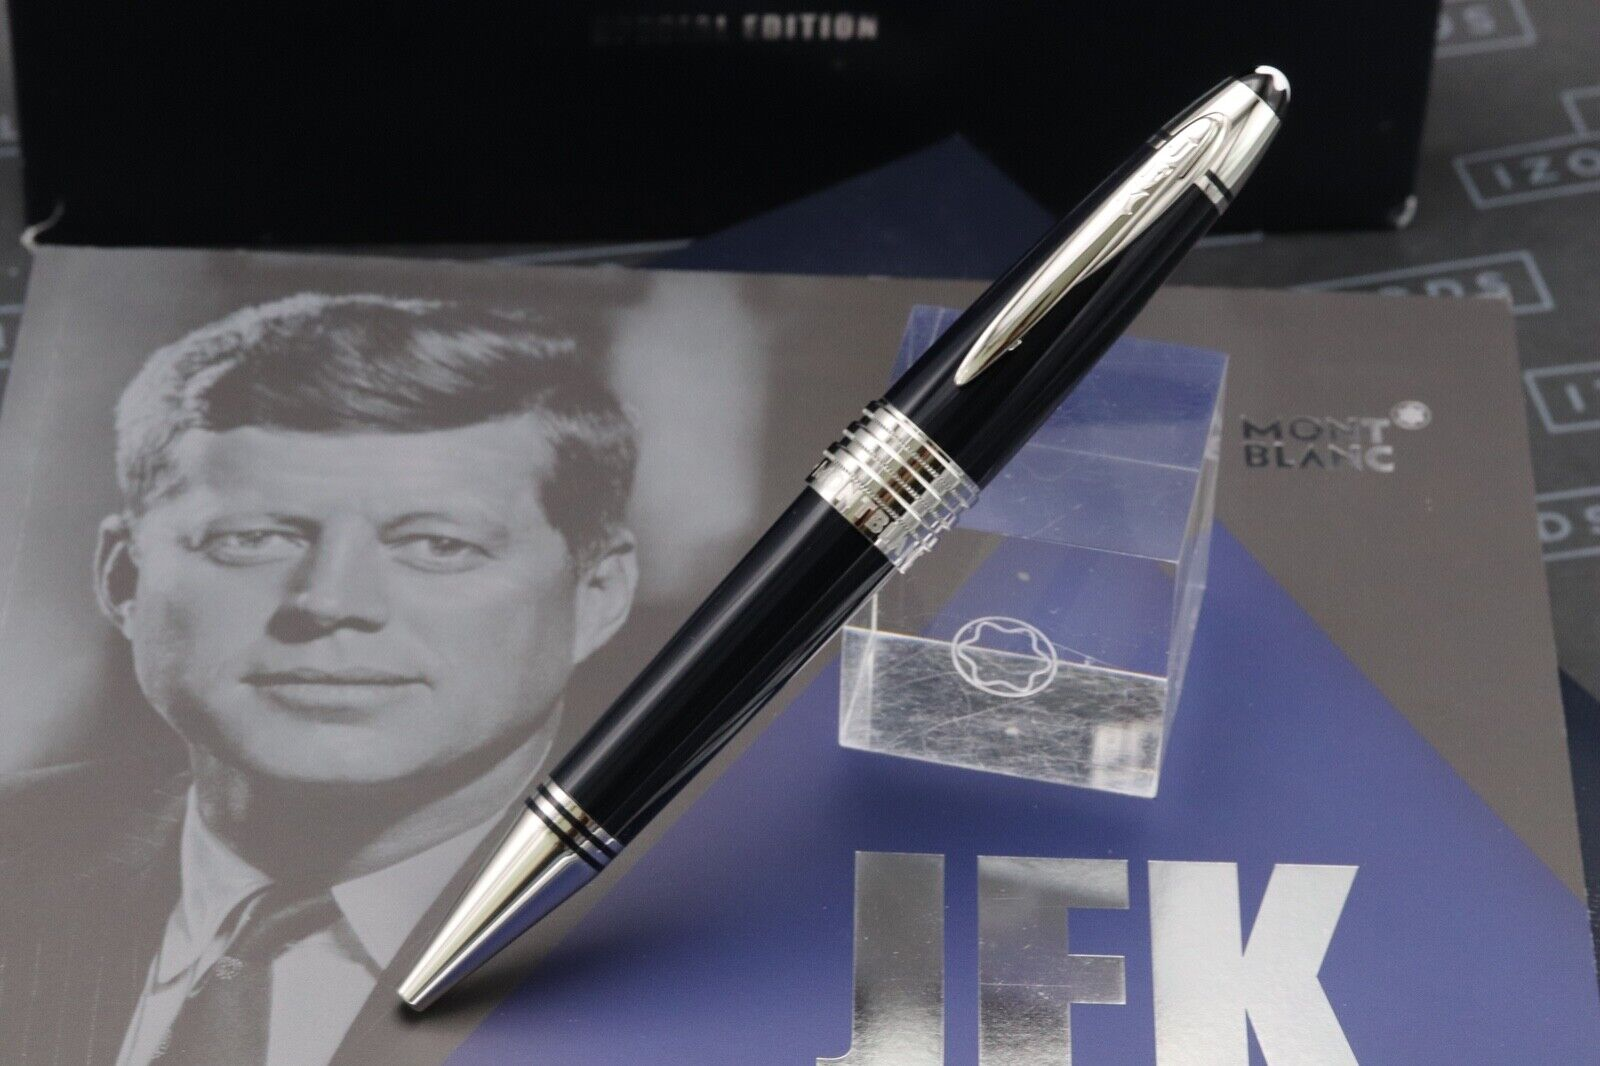 Montblanc Great Characters JFK Blue Special Edition Ballpoint Pen 1